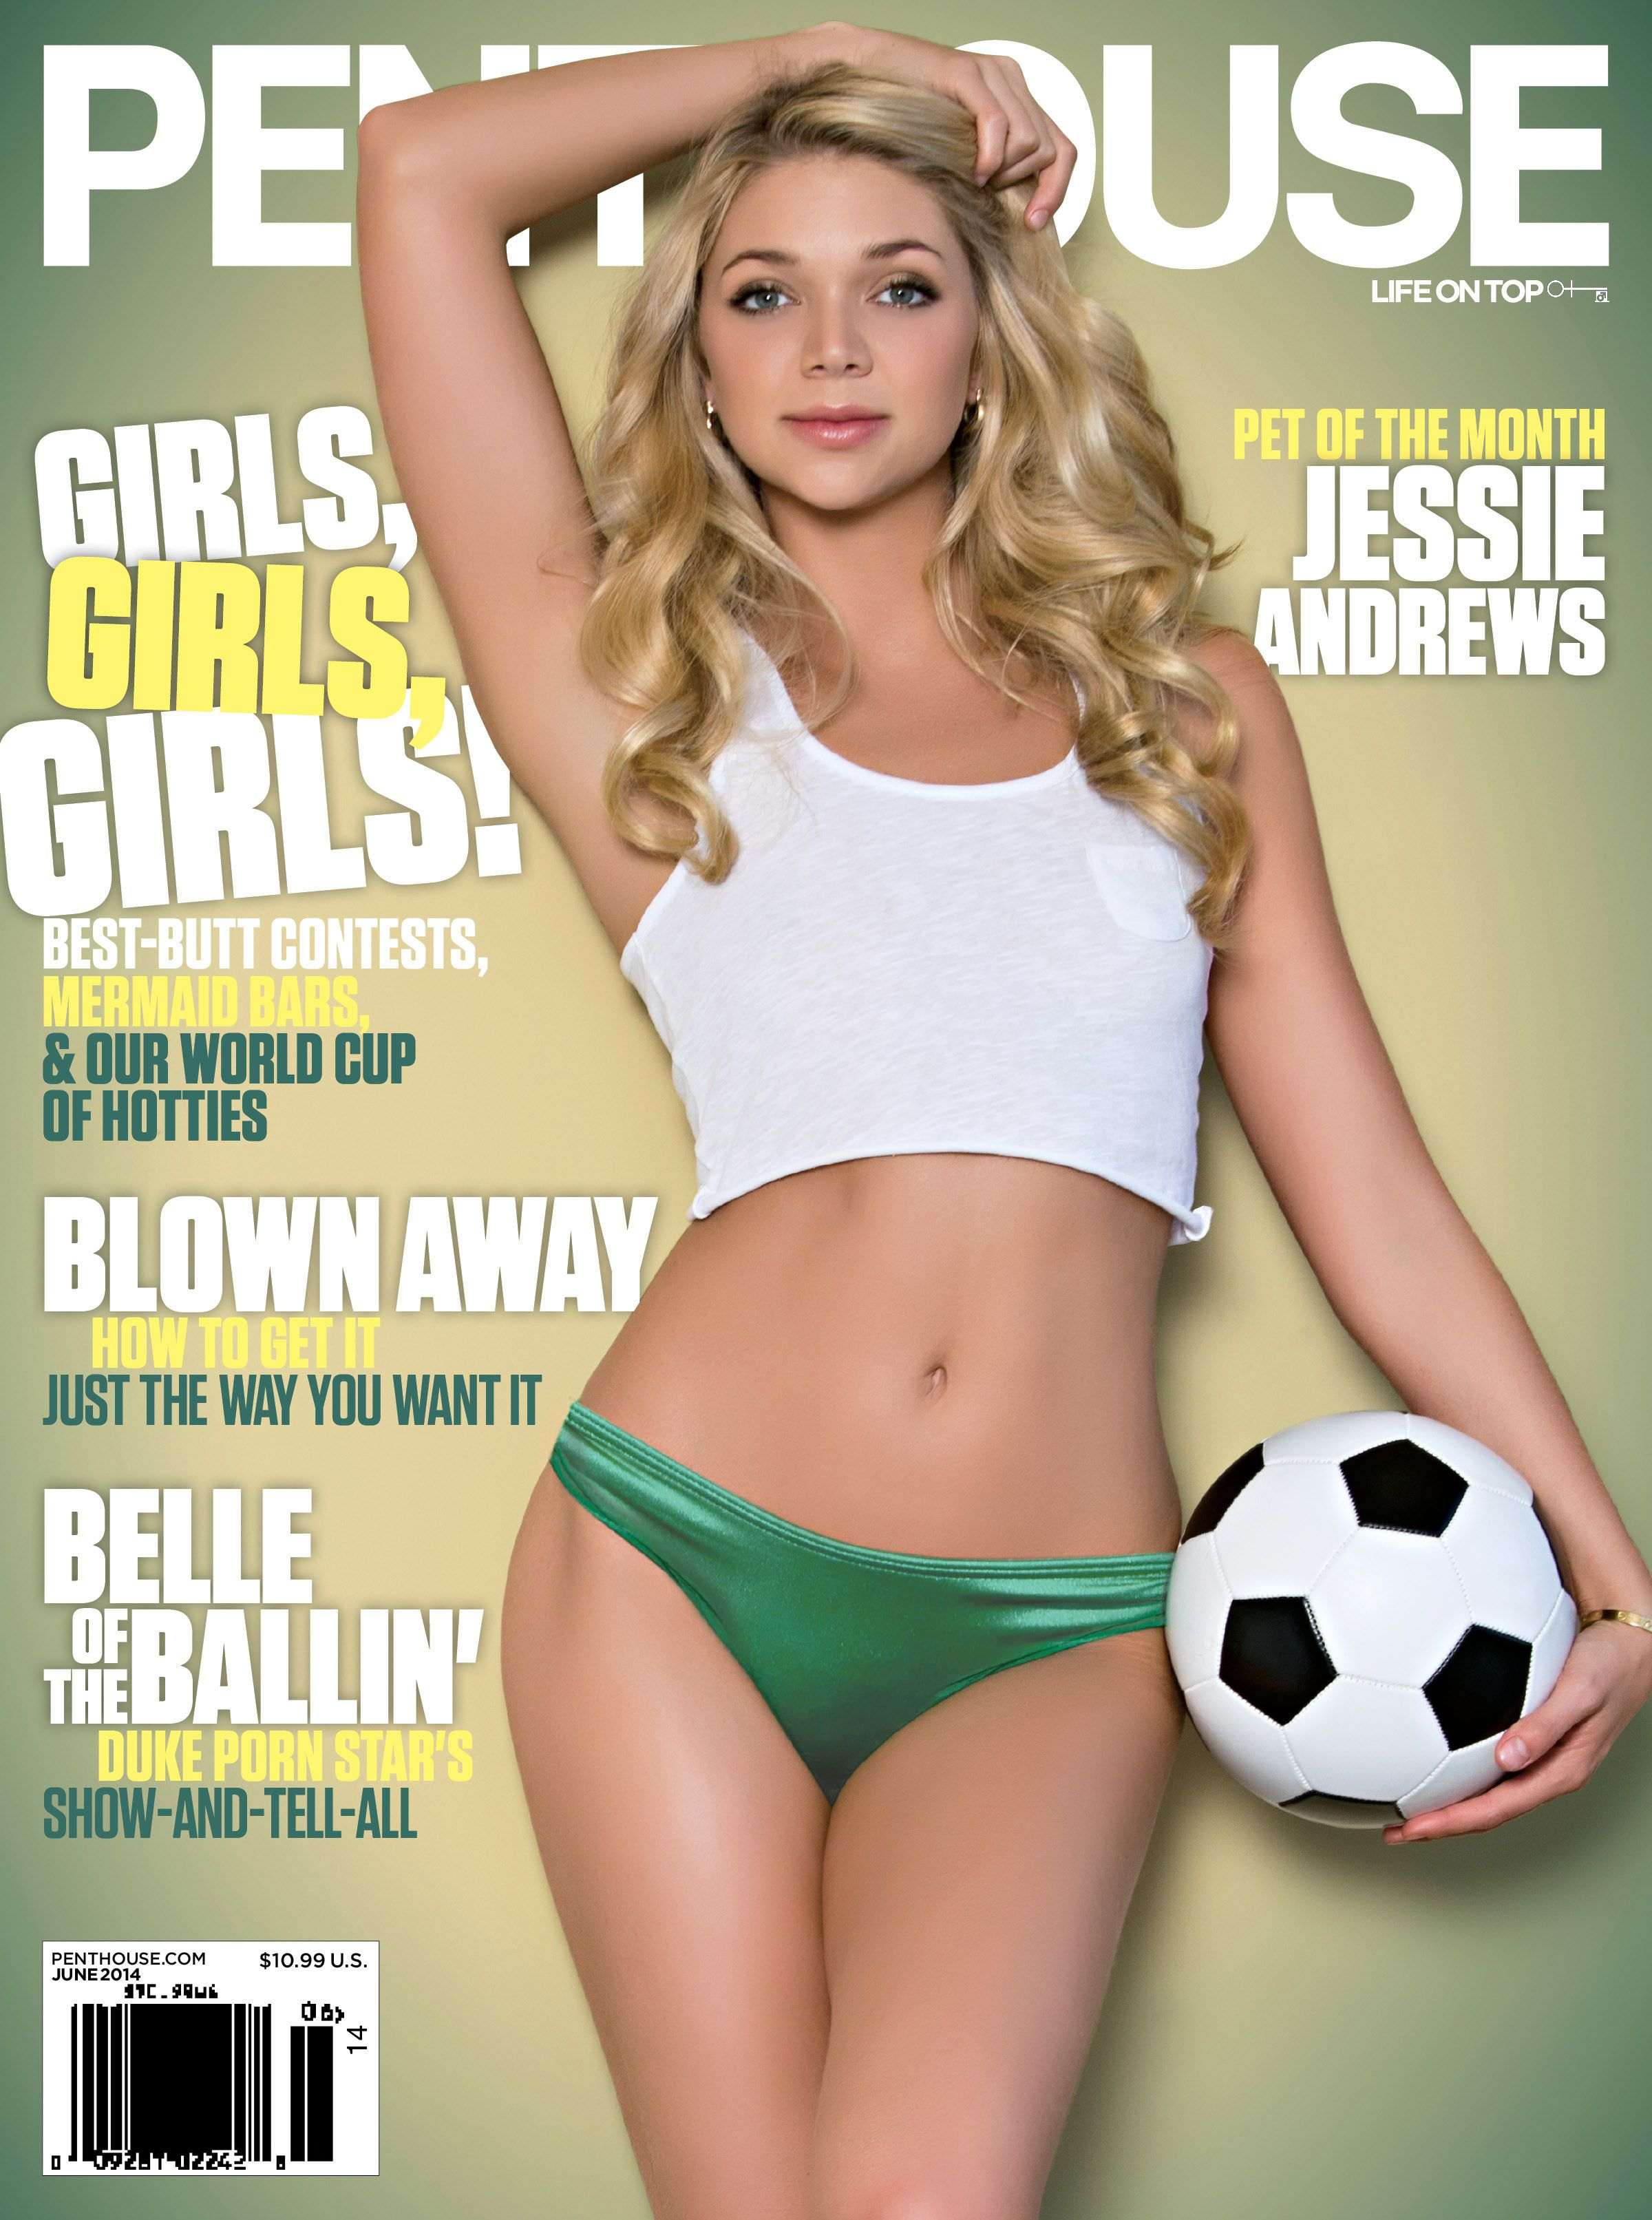 jessie andrews - june pet of the month | 2014 penthouse magazines